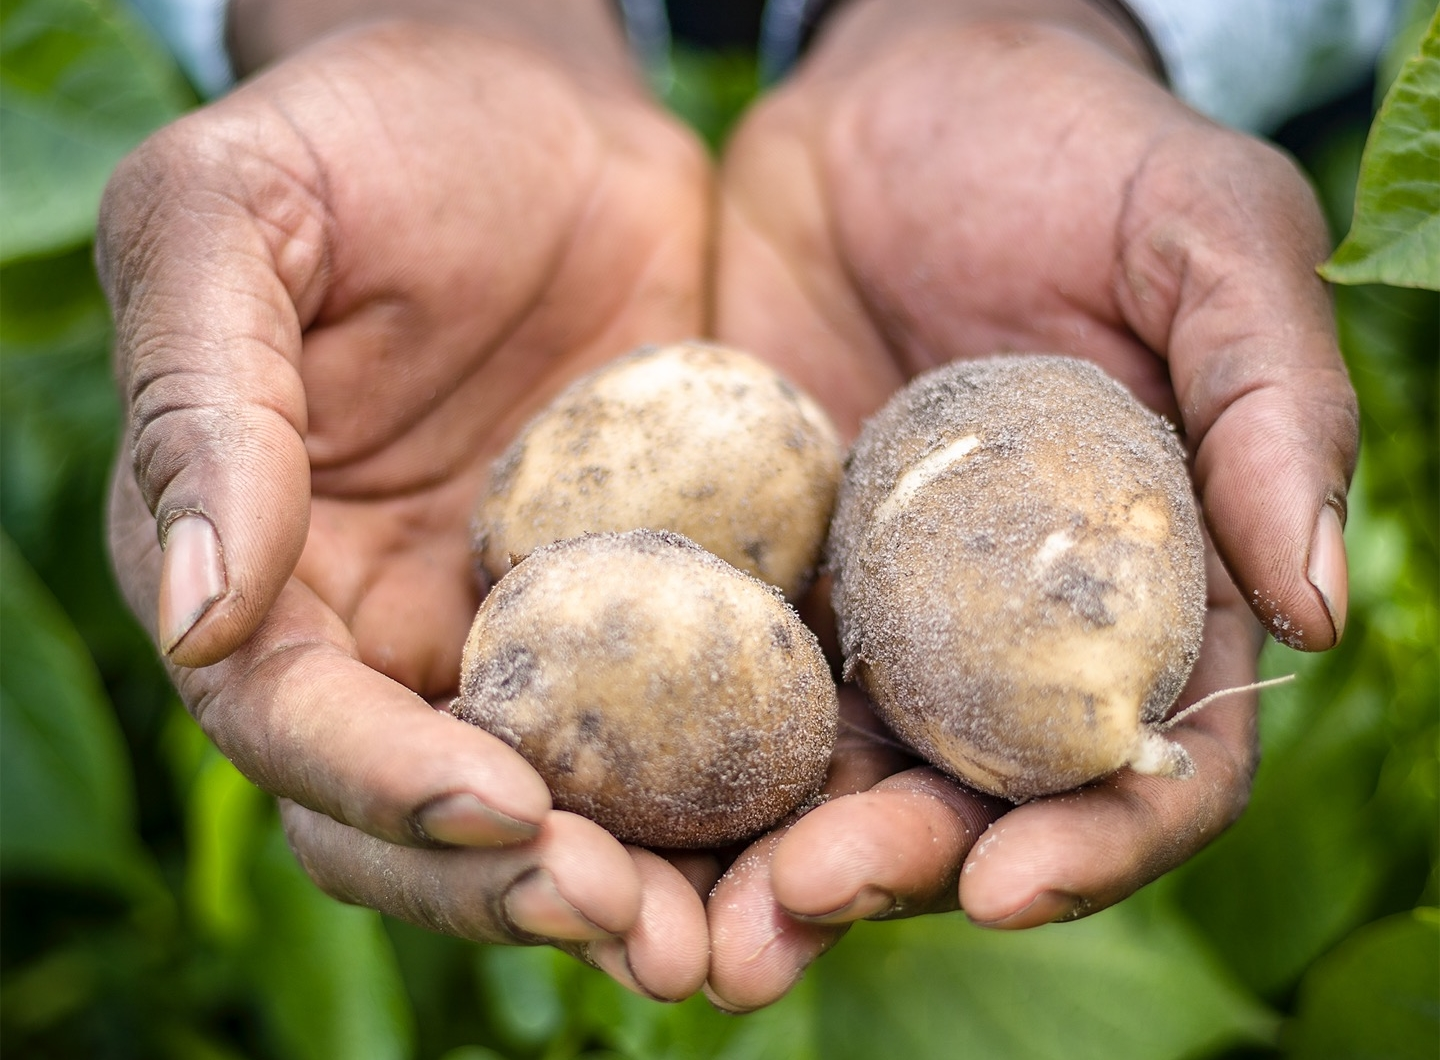 Farmer's Hands with Potatoes